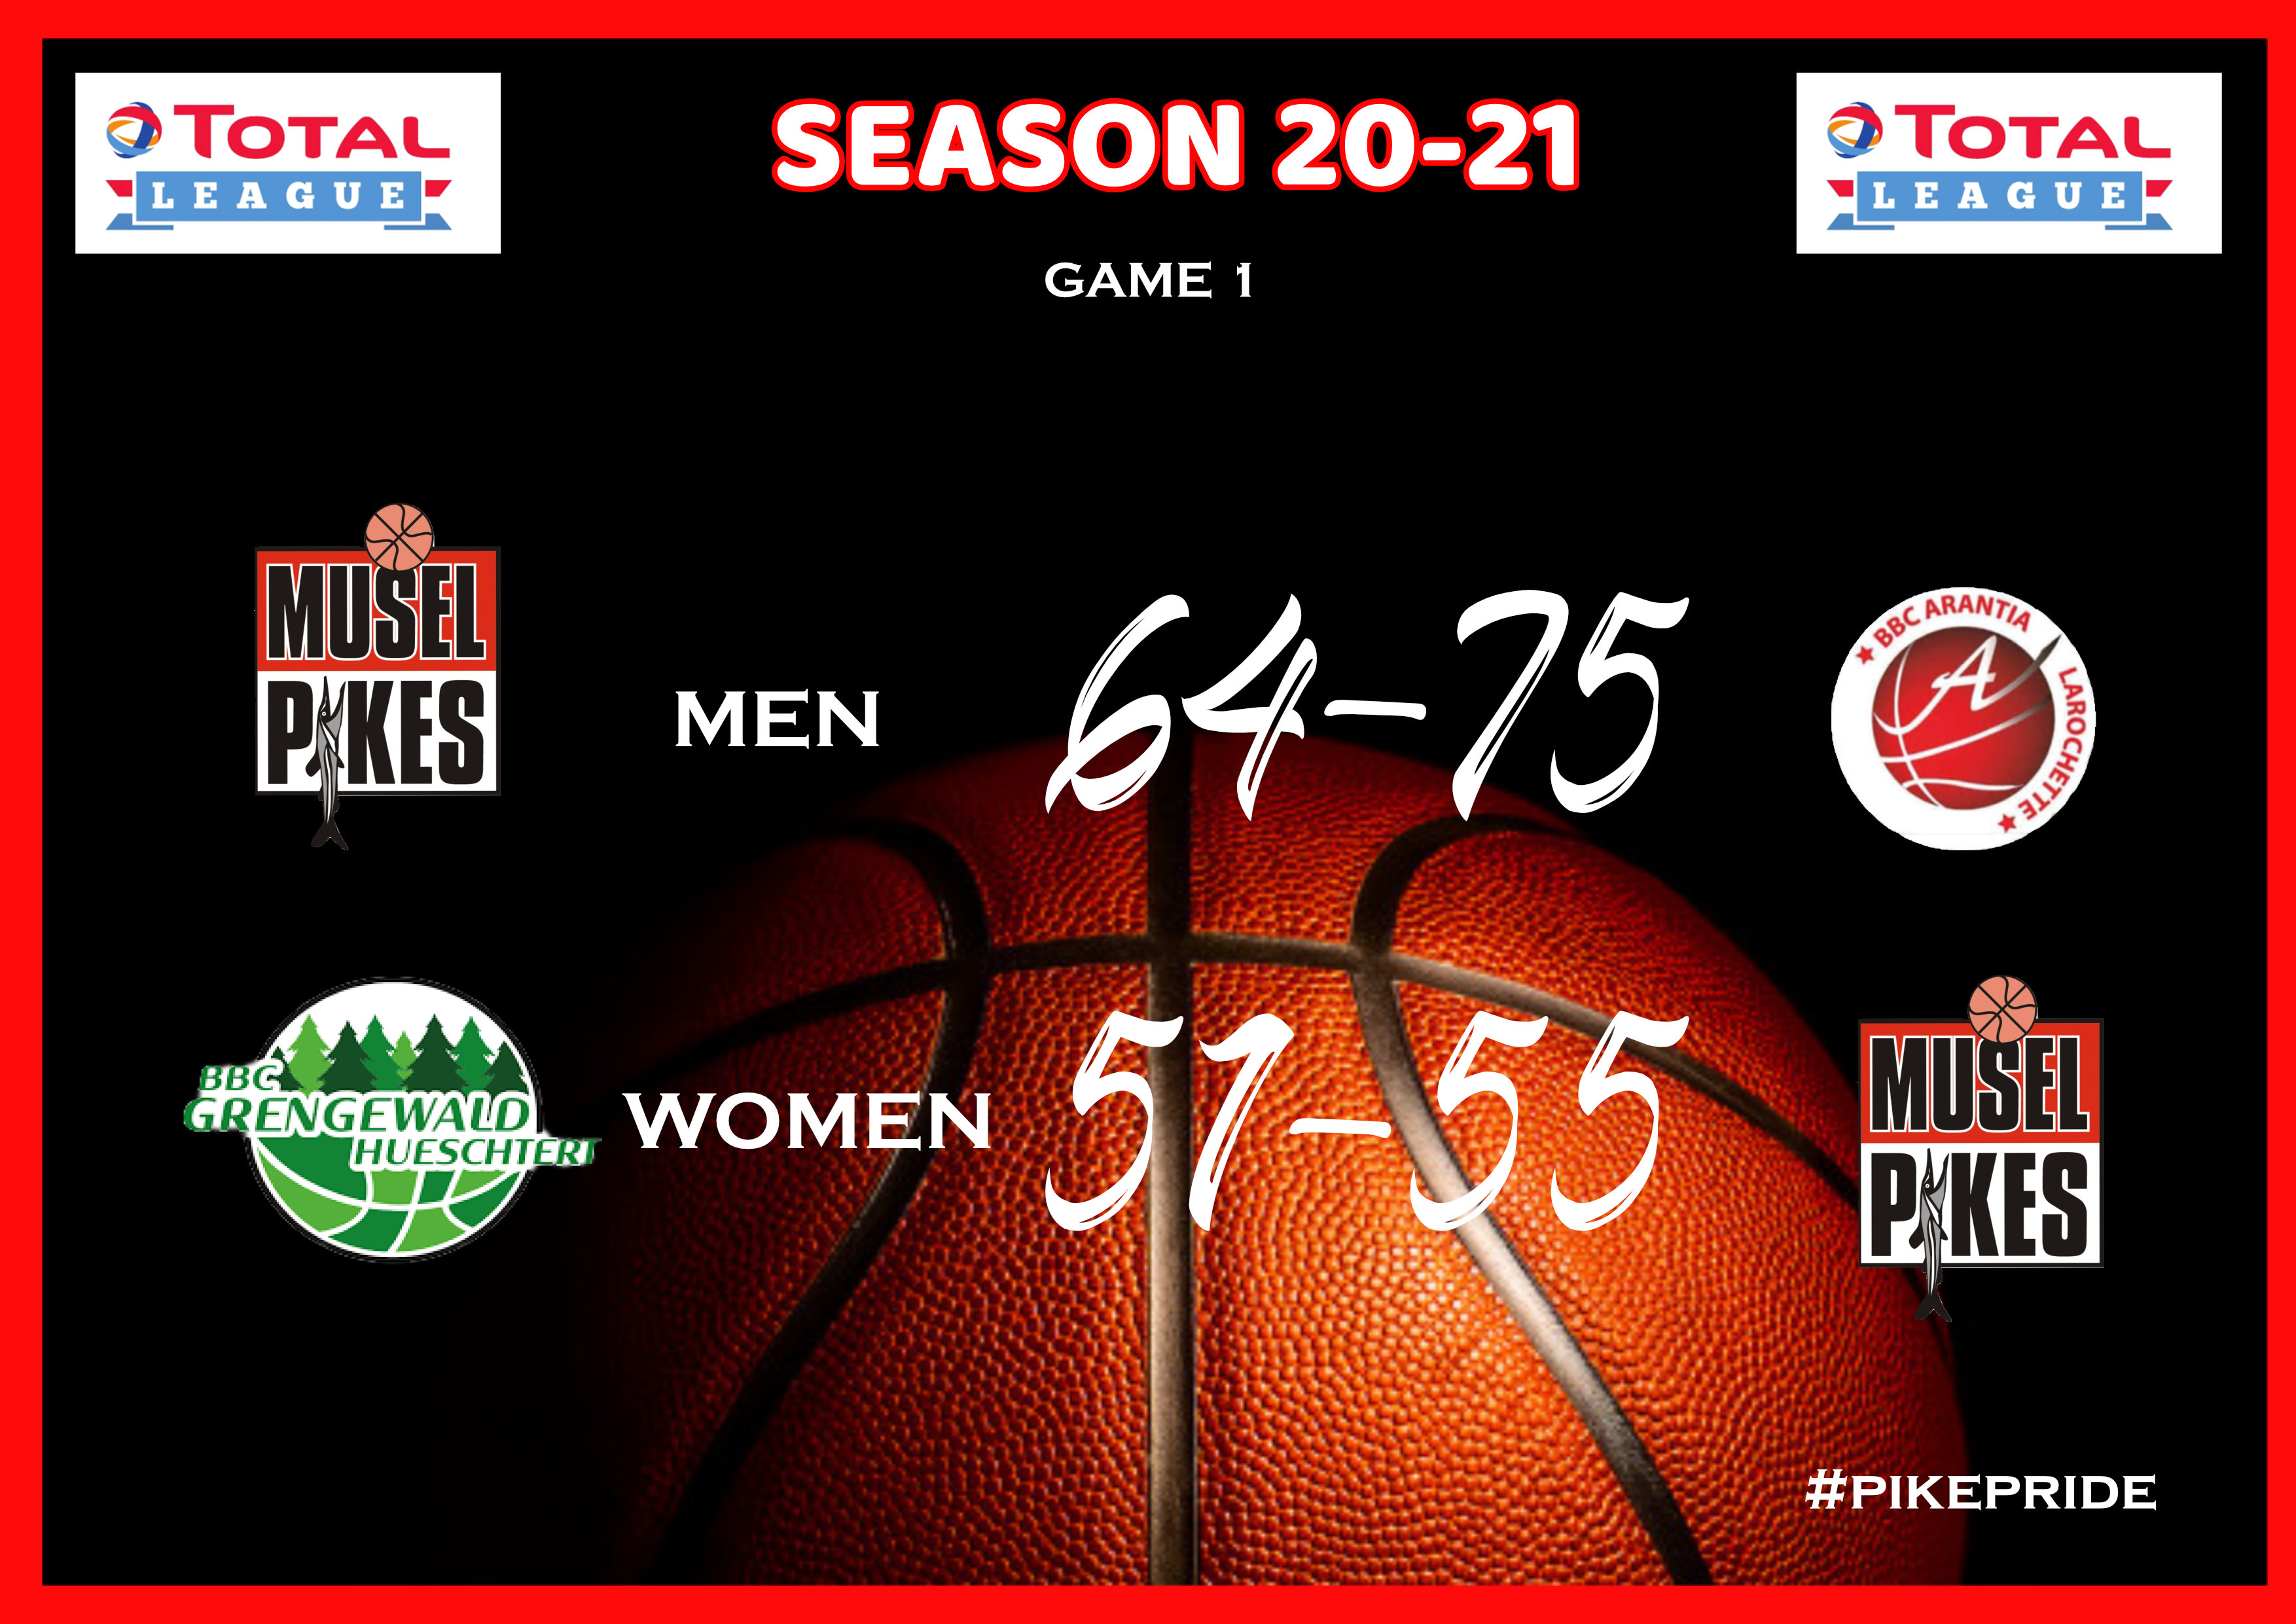 Results game 1